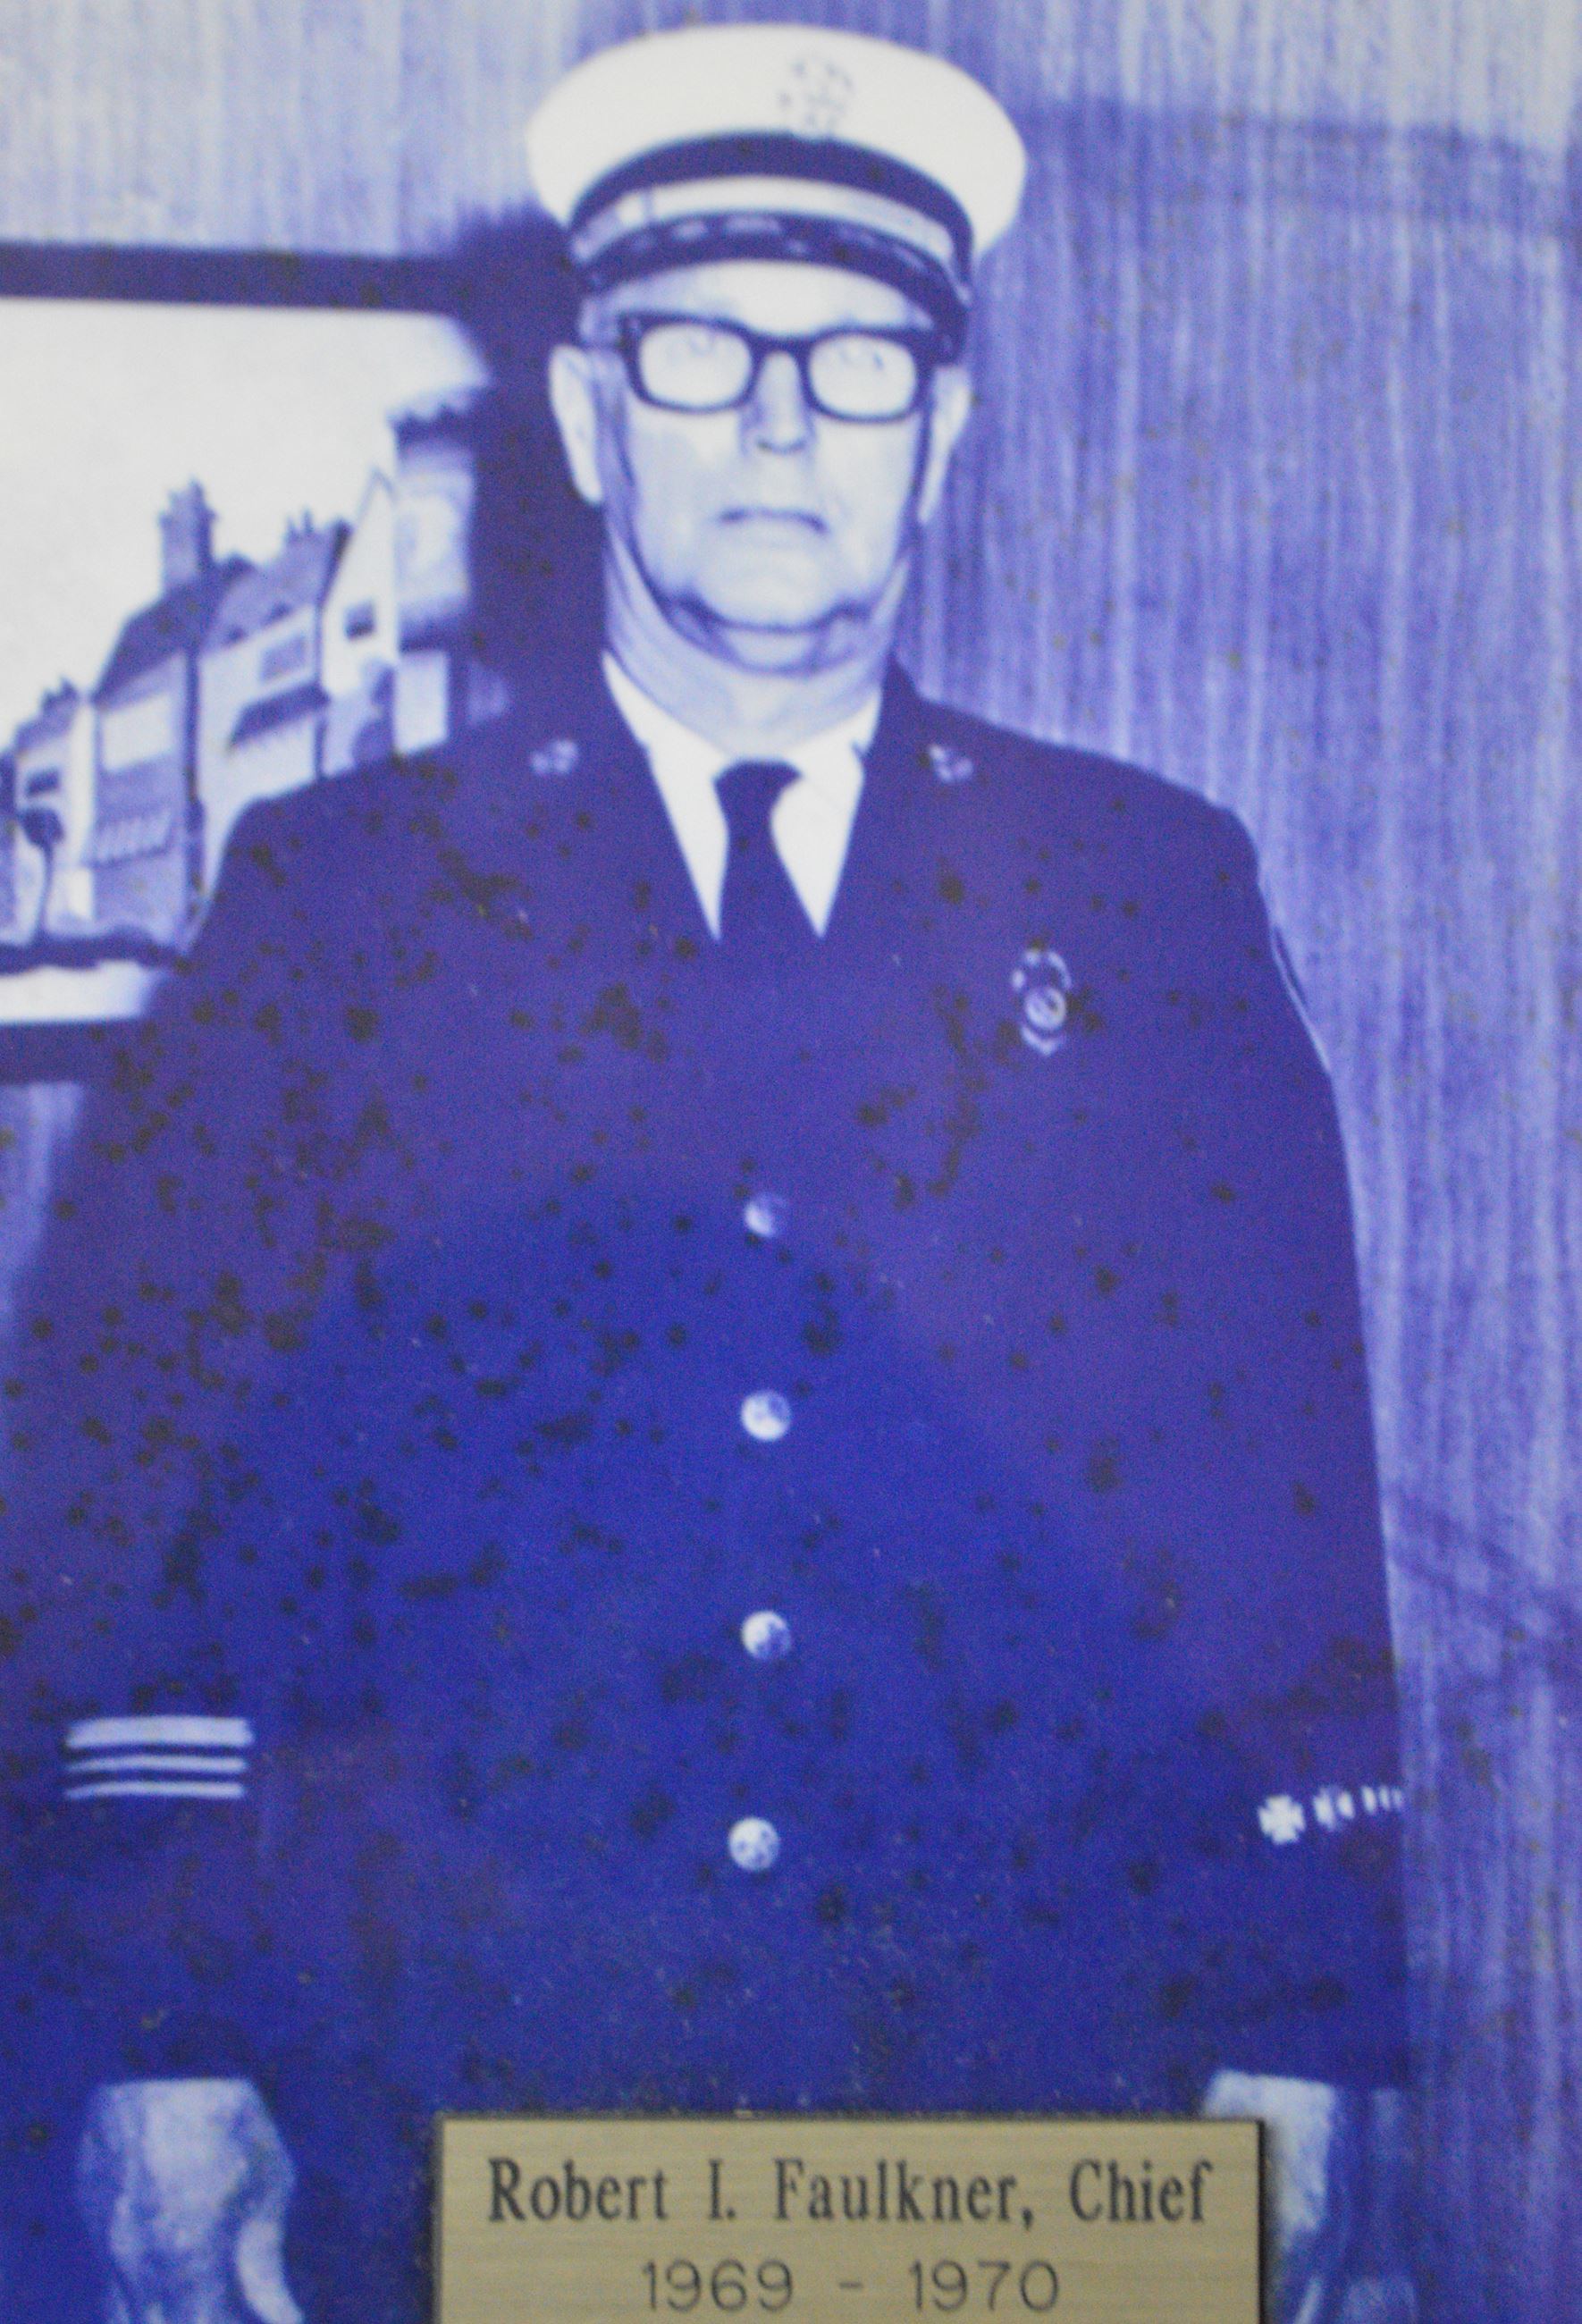 The Late Fire Chief Robert I. Faulkner Served from 1969 - 1970